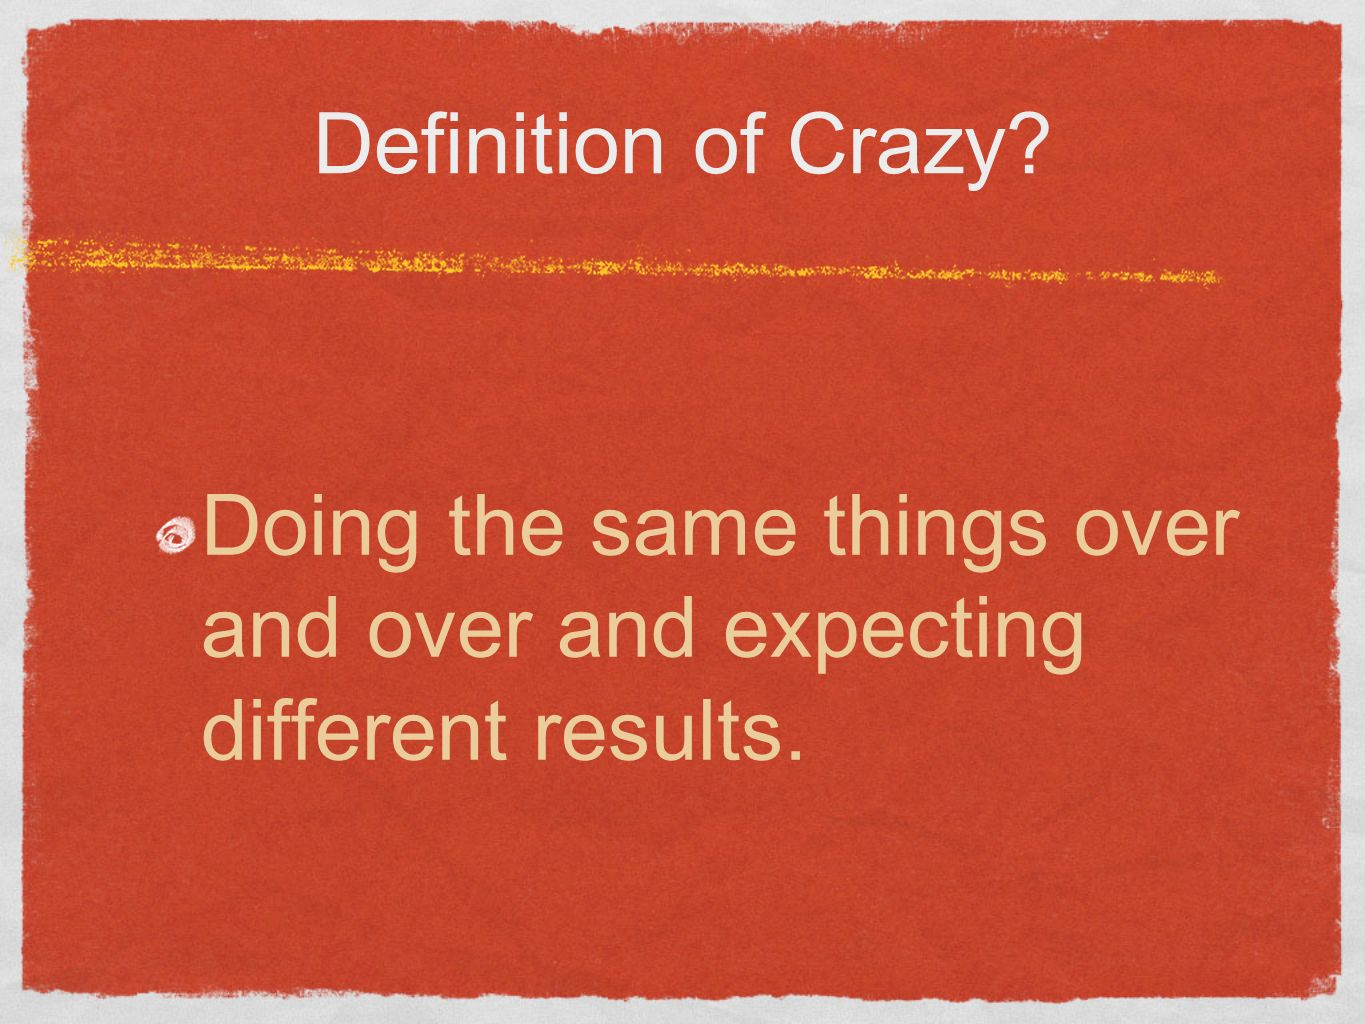 Definition of Crazy? Doing the same things over and over and expecting different results.